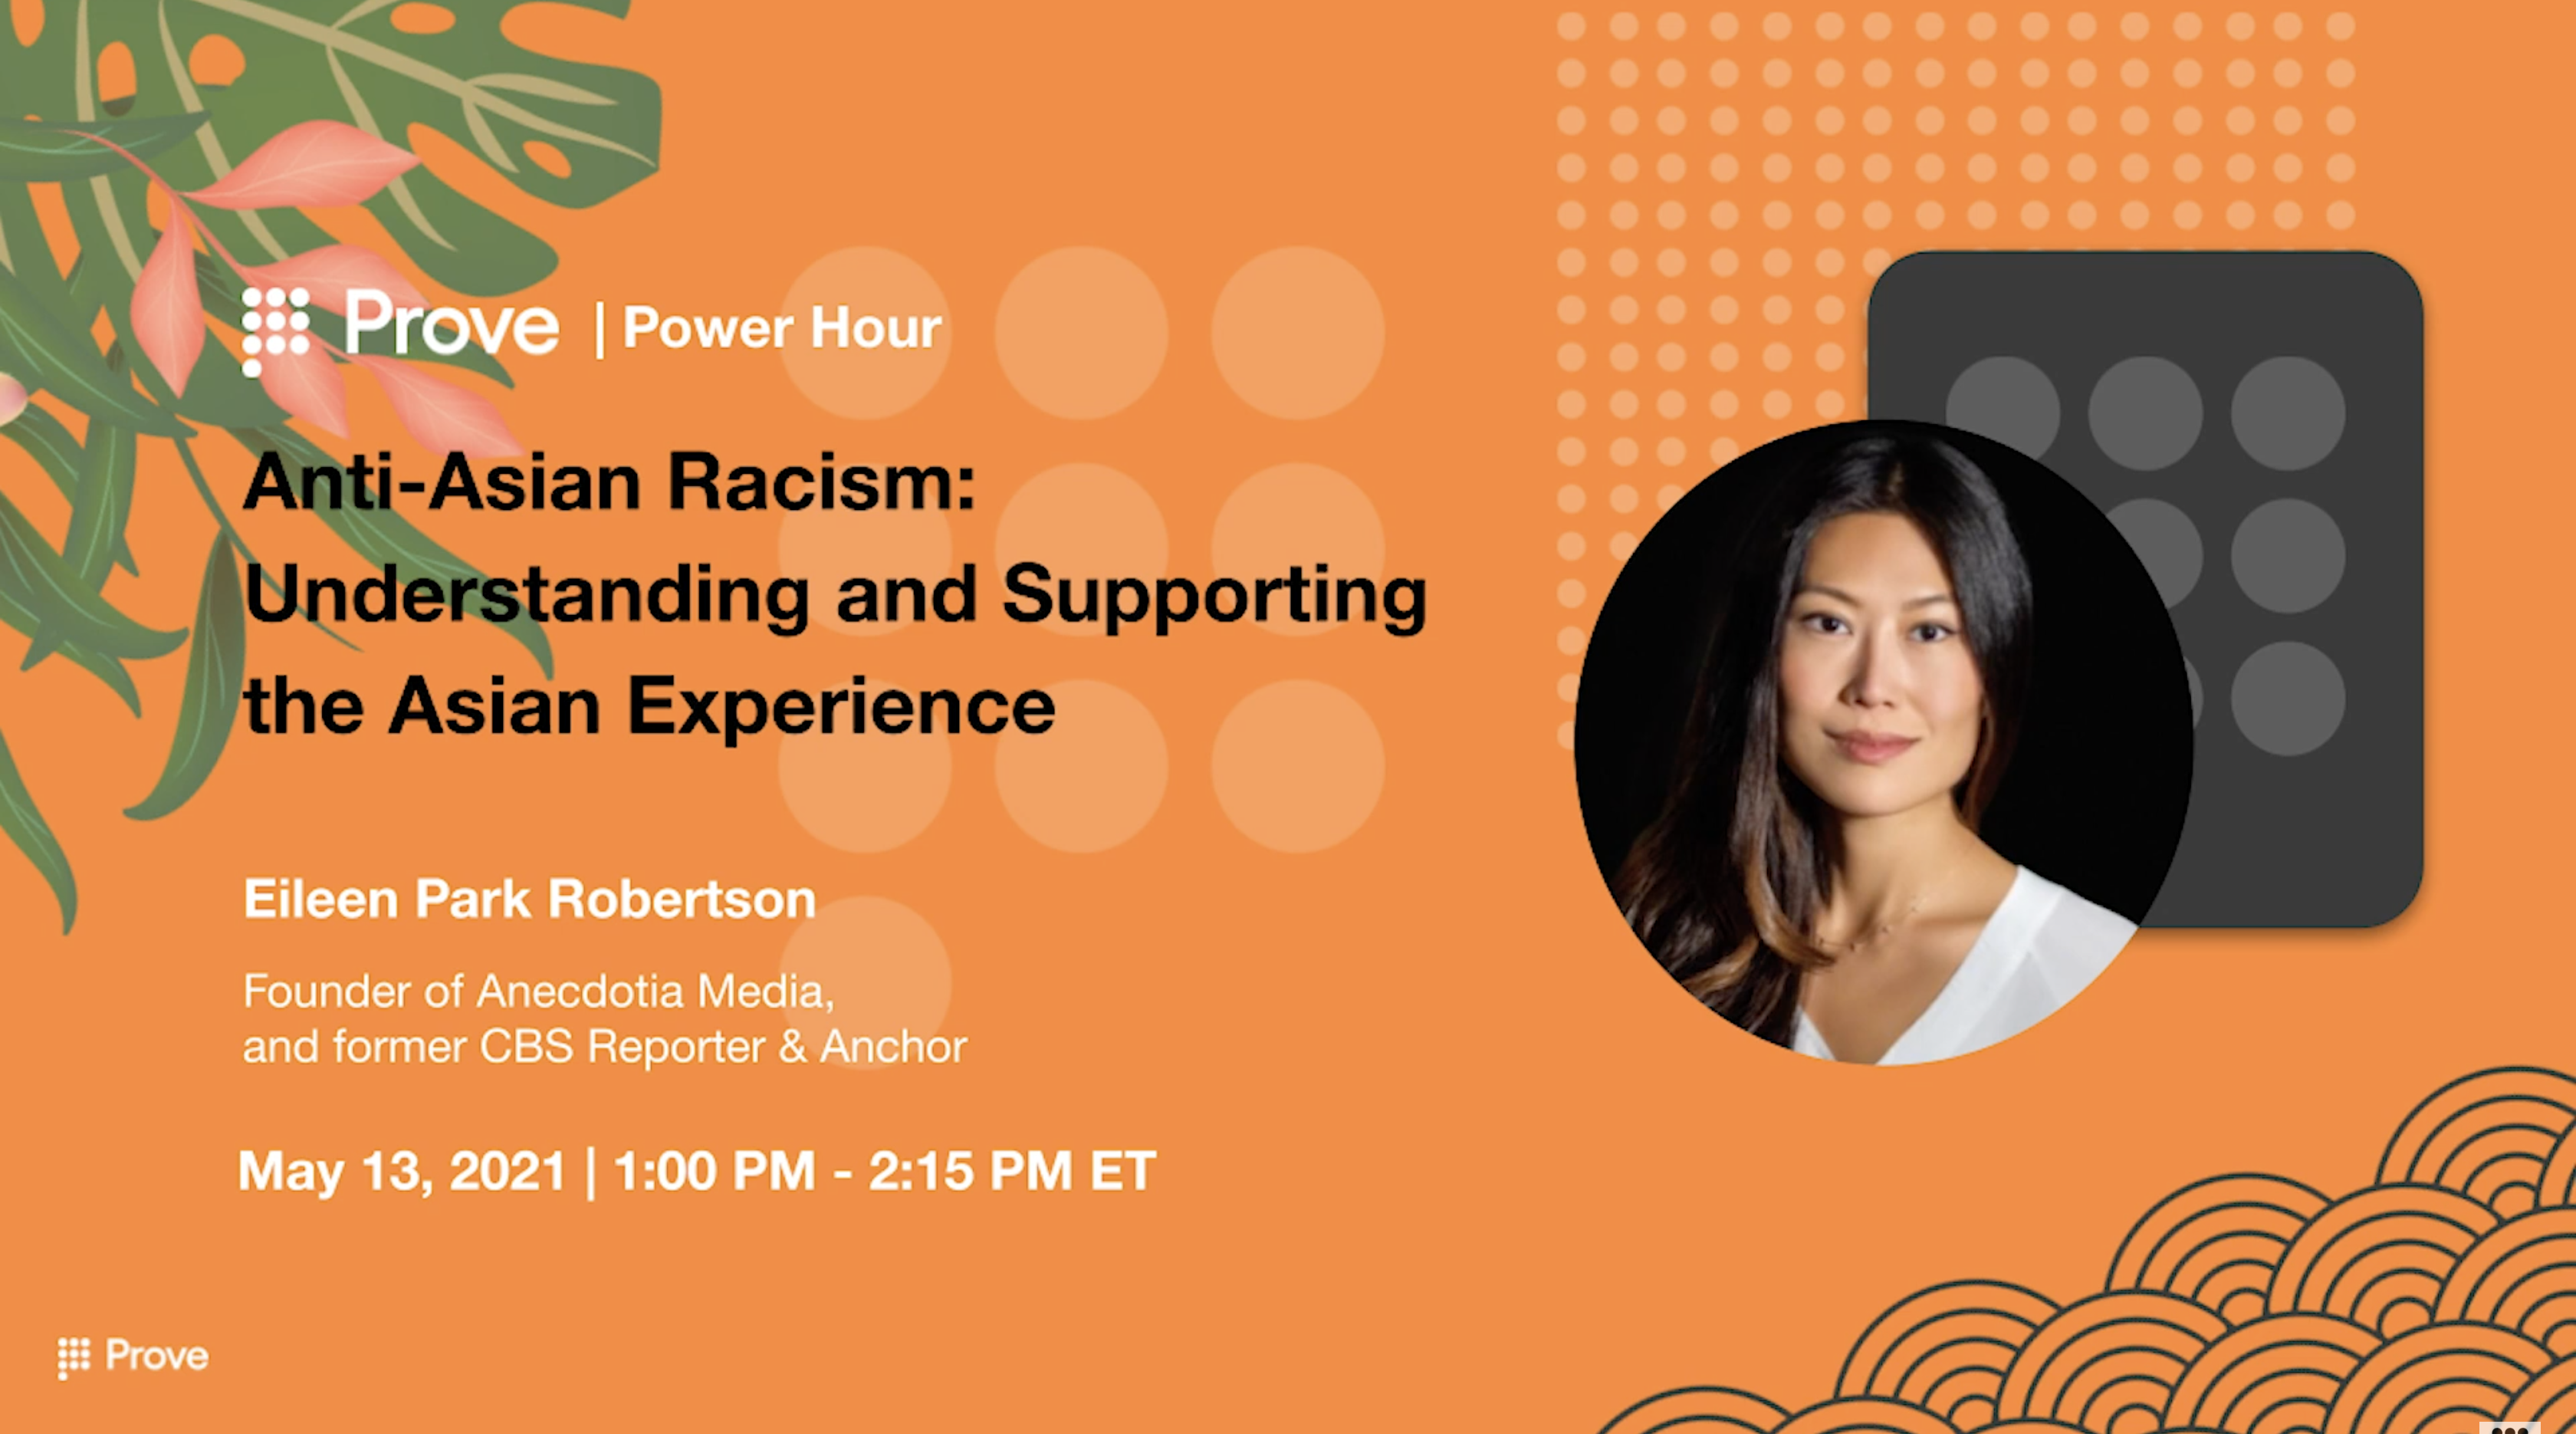 Prove Power Hour | Anti-Asian Racism: Understanding and Supporting the Asian Experience